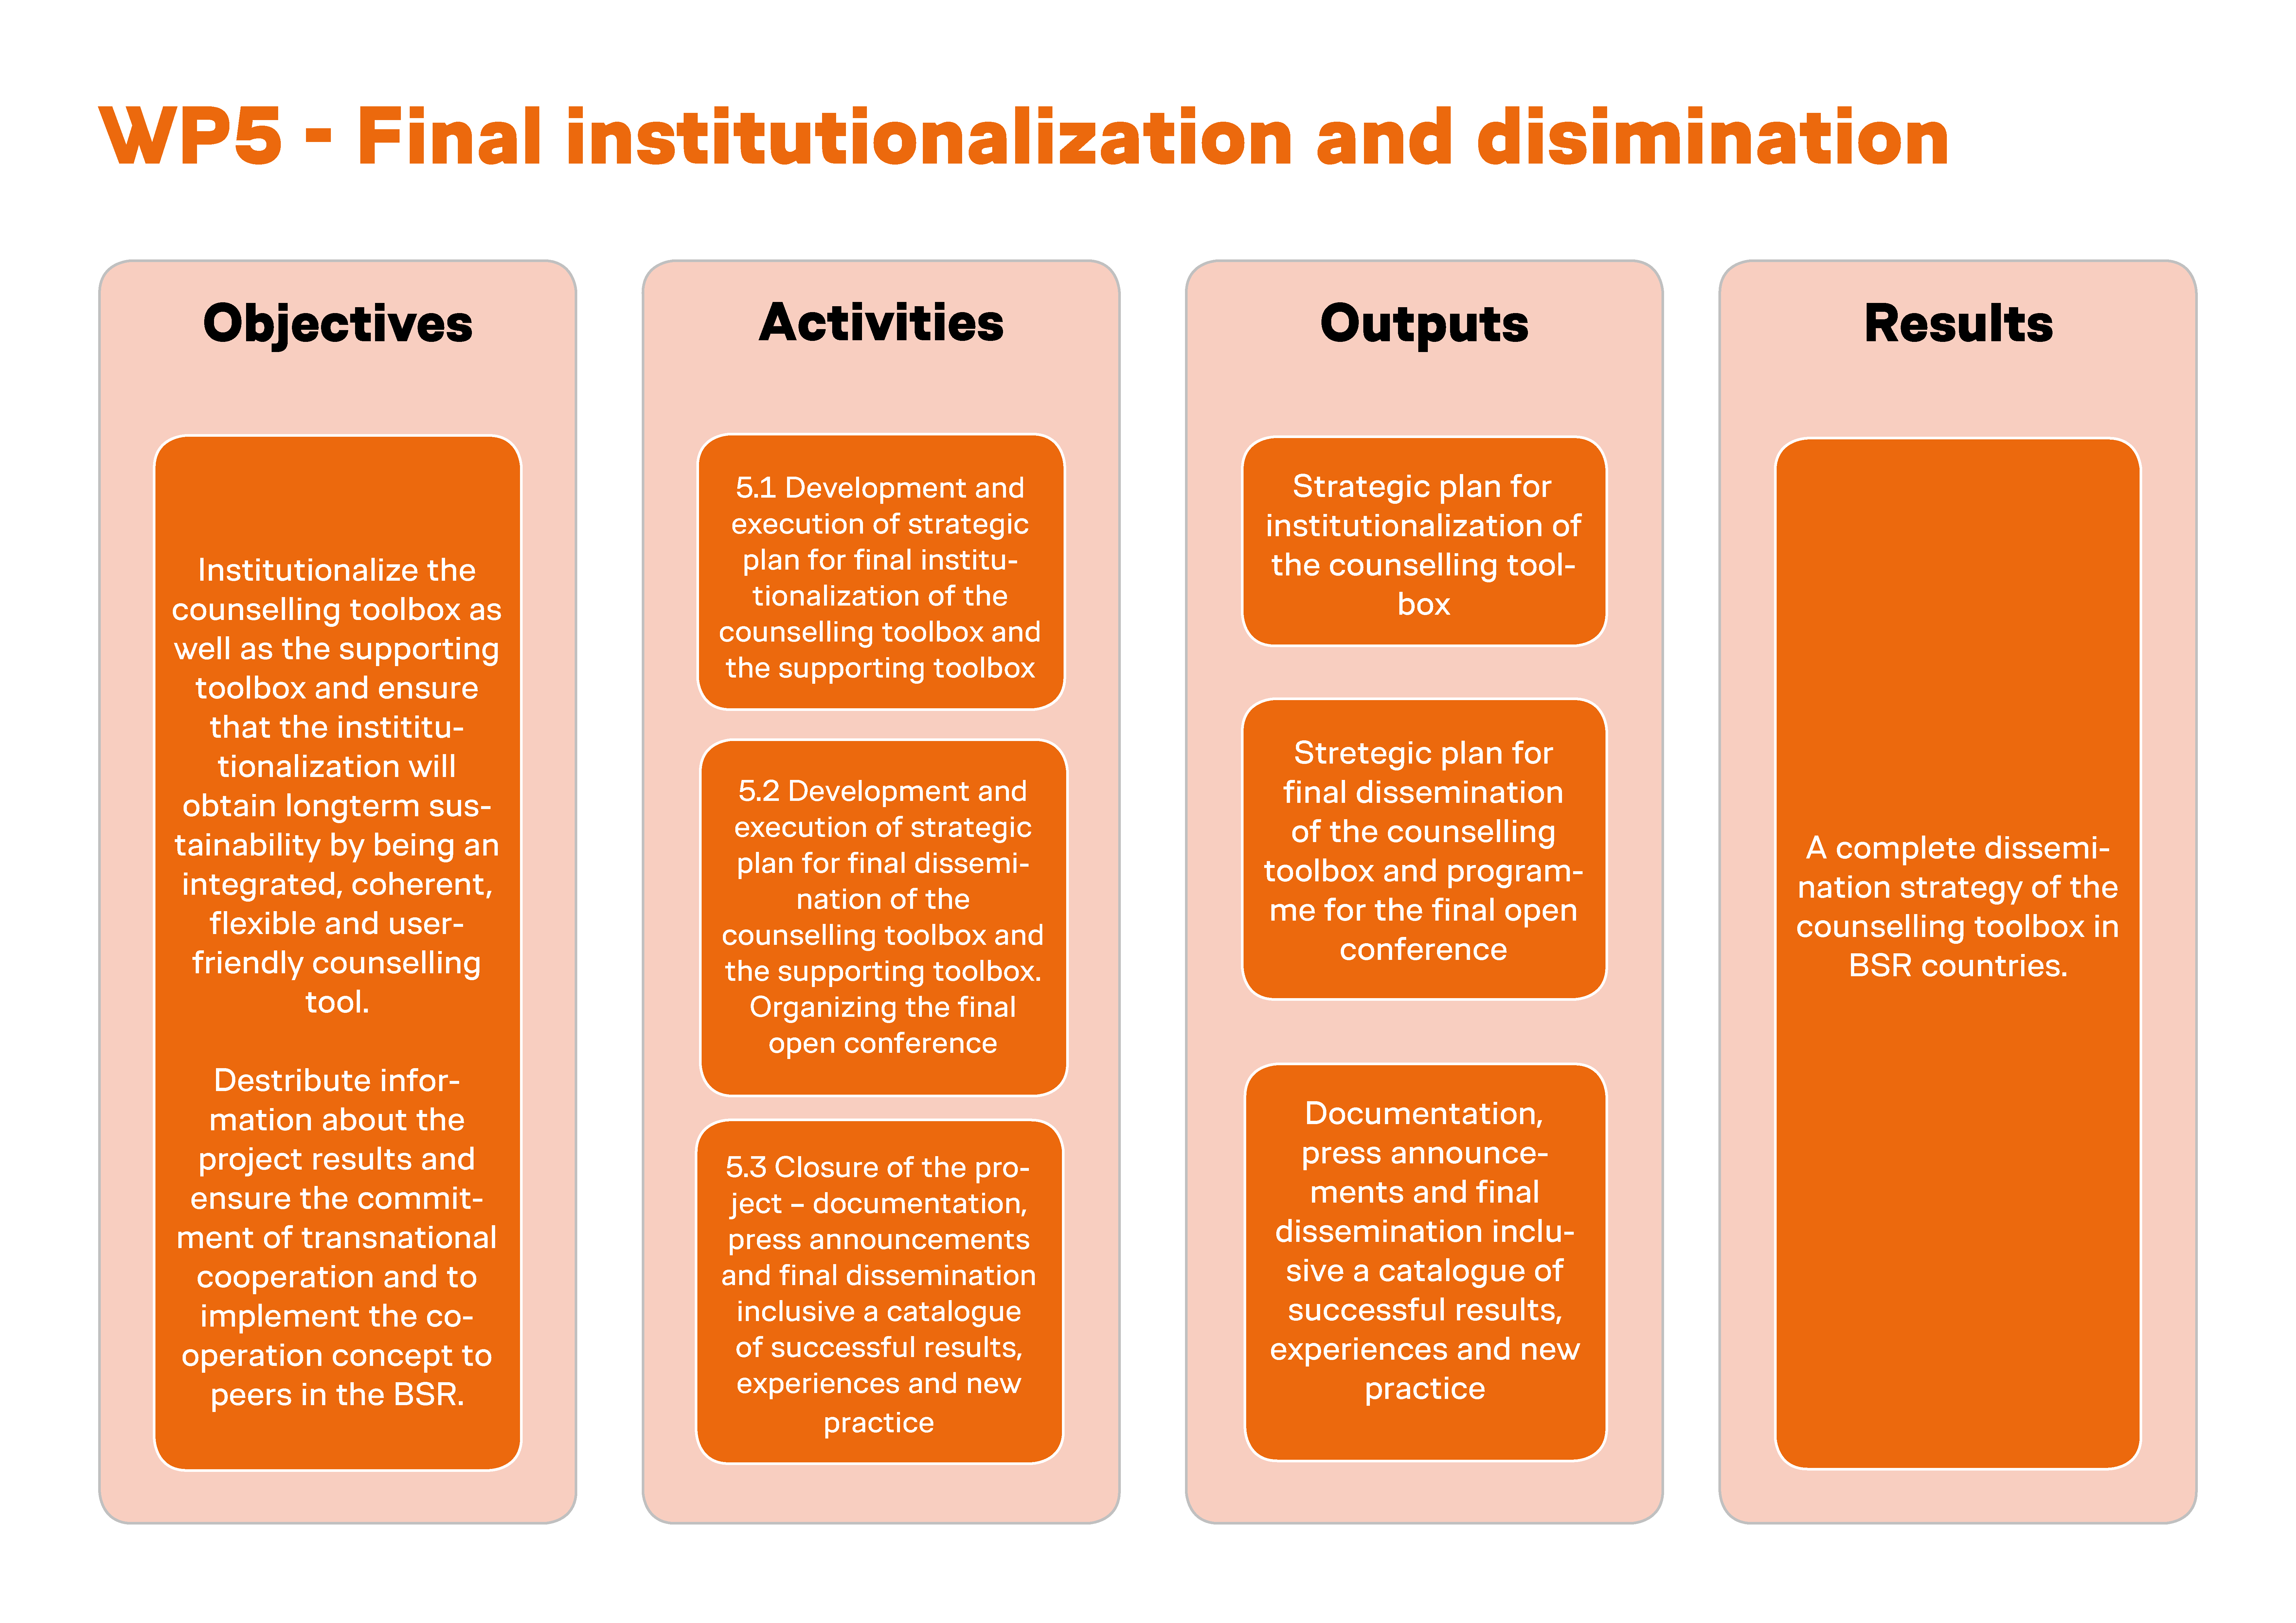 Final institutionalizing